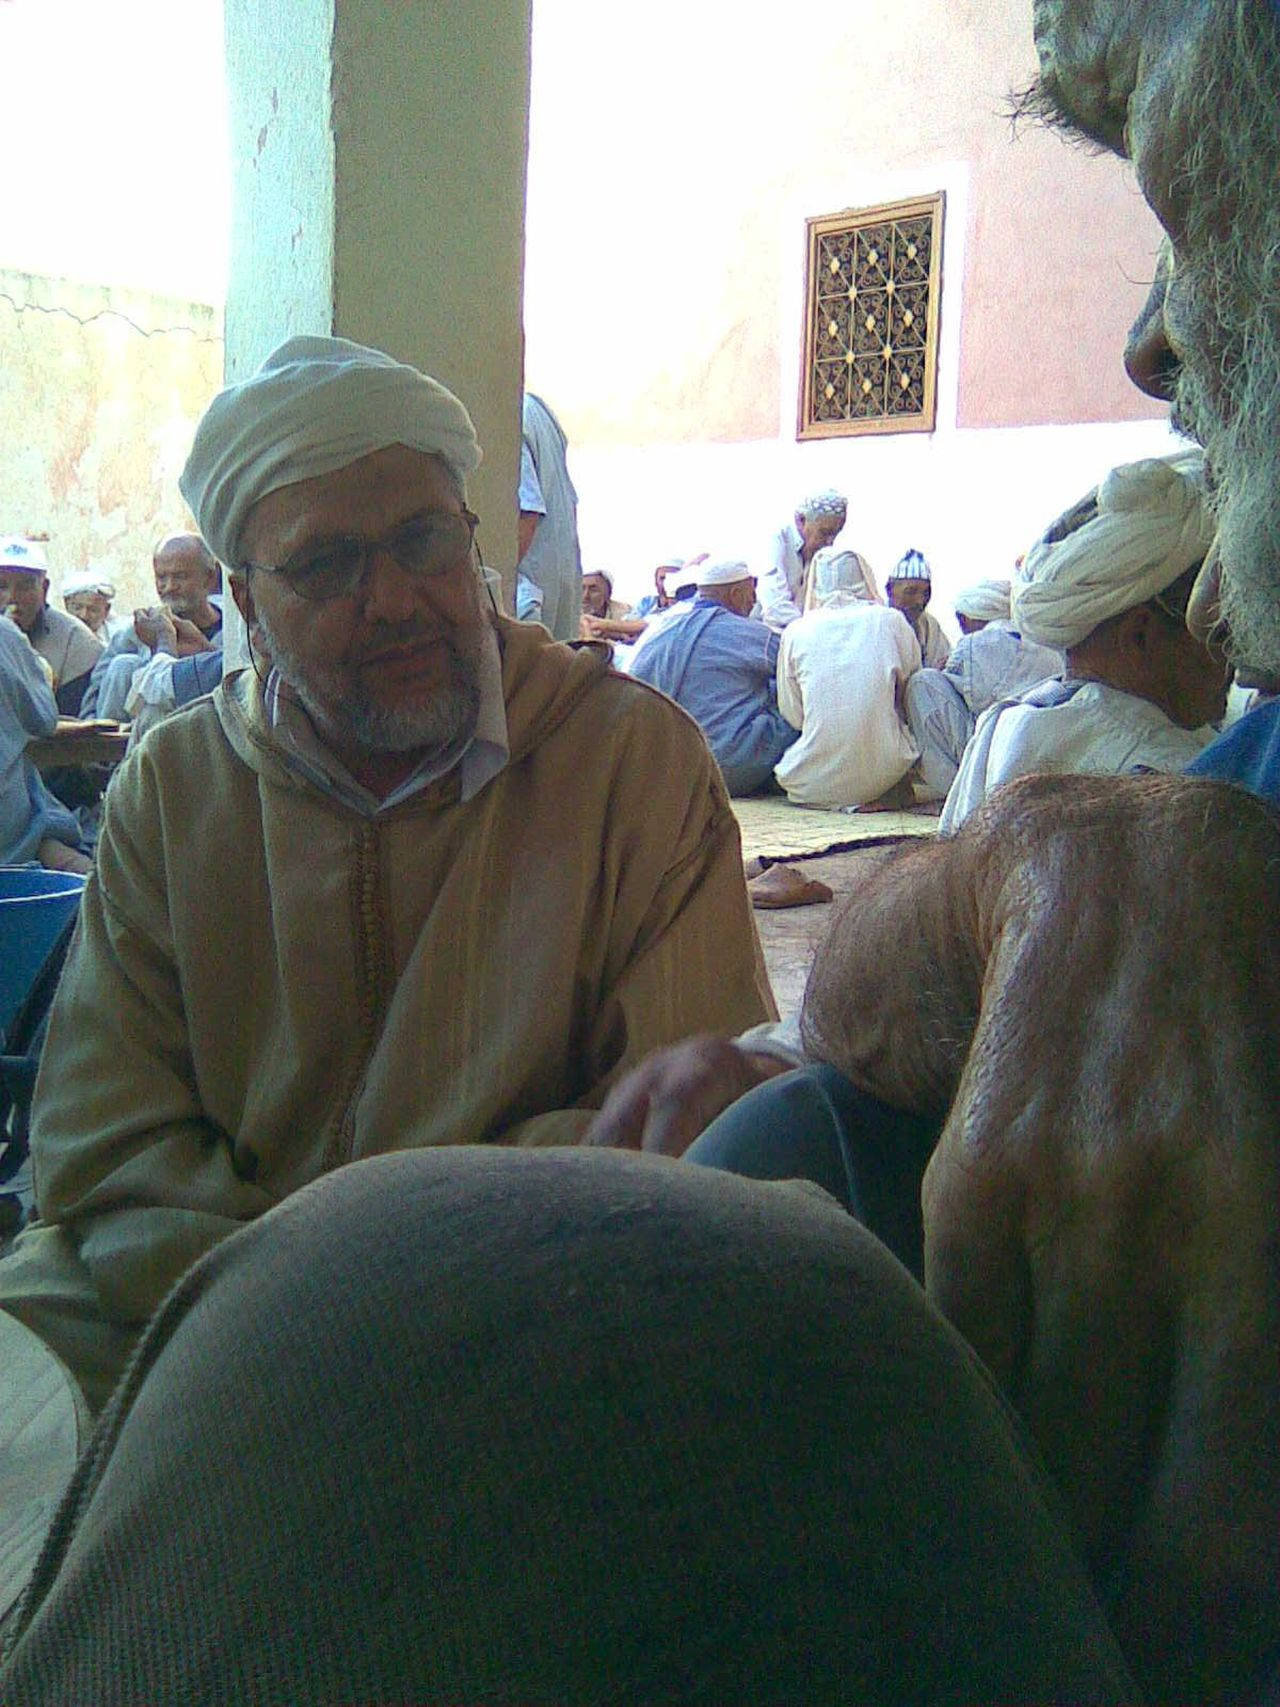 conversation to mosque imam Berber  Clothes Comfortable Djellaba Festivity Folklore Islam Lifestyles Men Morocco Mosque Oriental Relaxing Tamazight Tiznit Togetherness Turban Vila